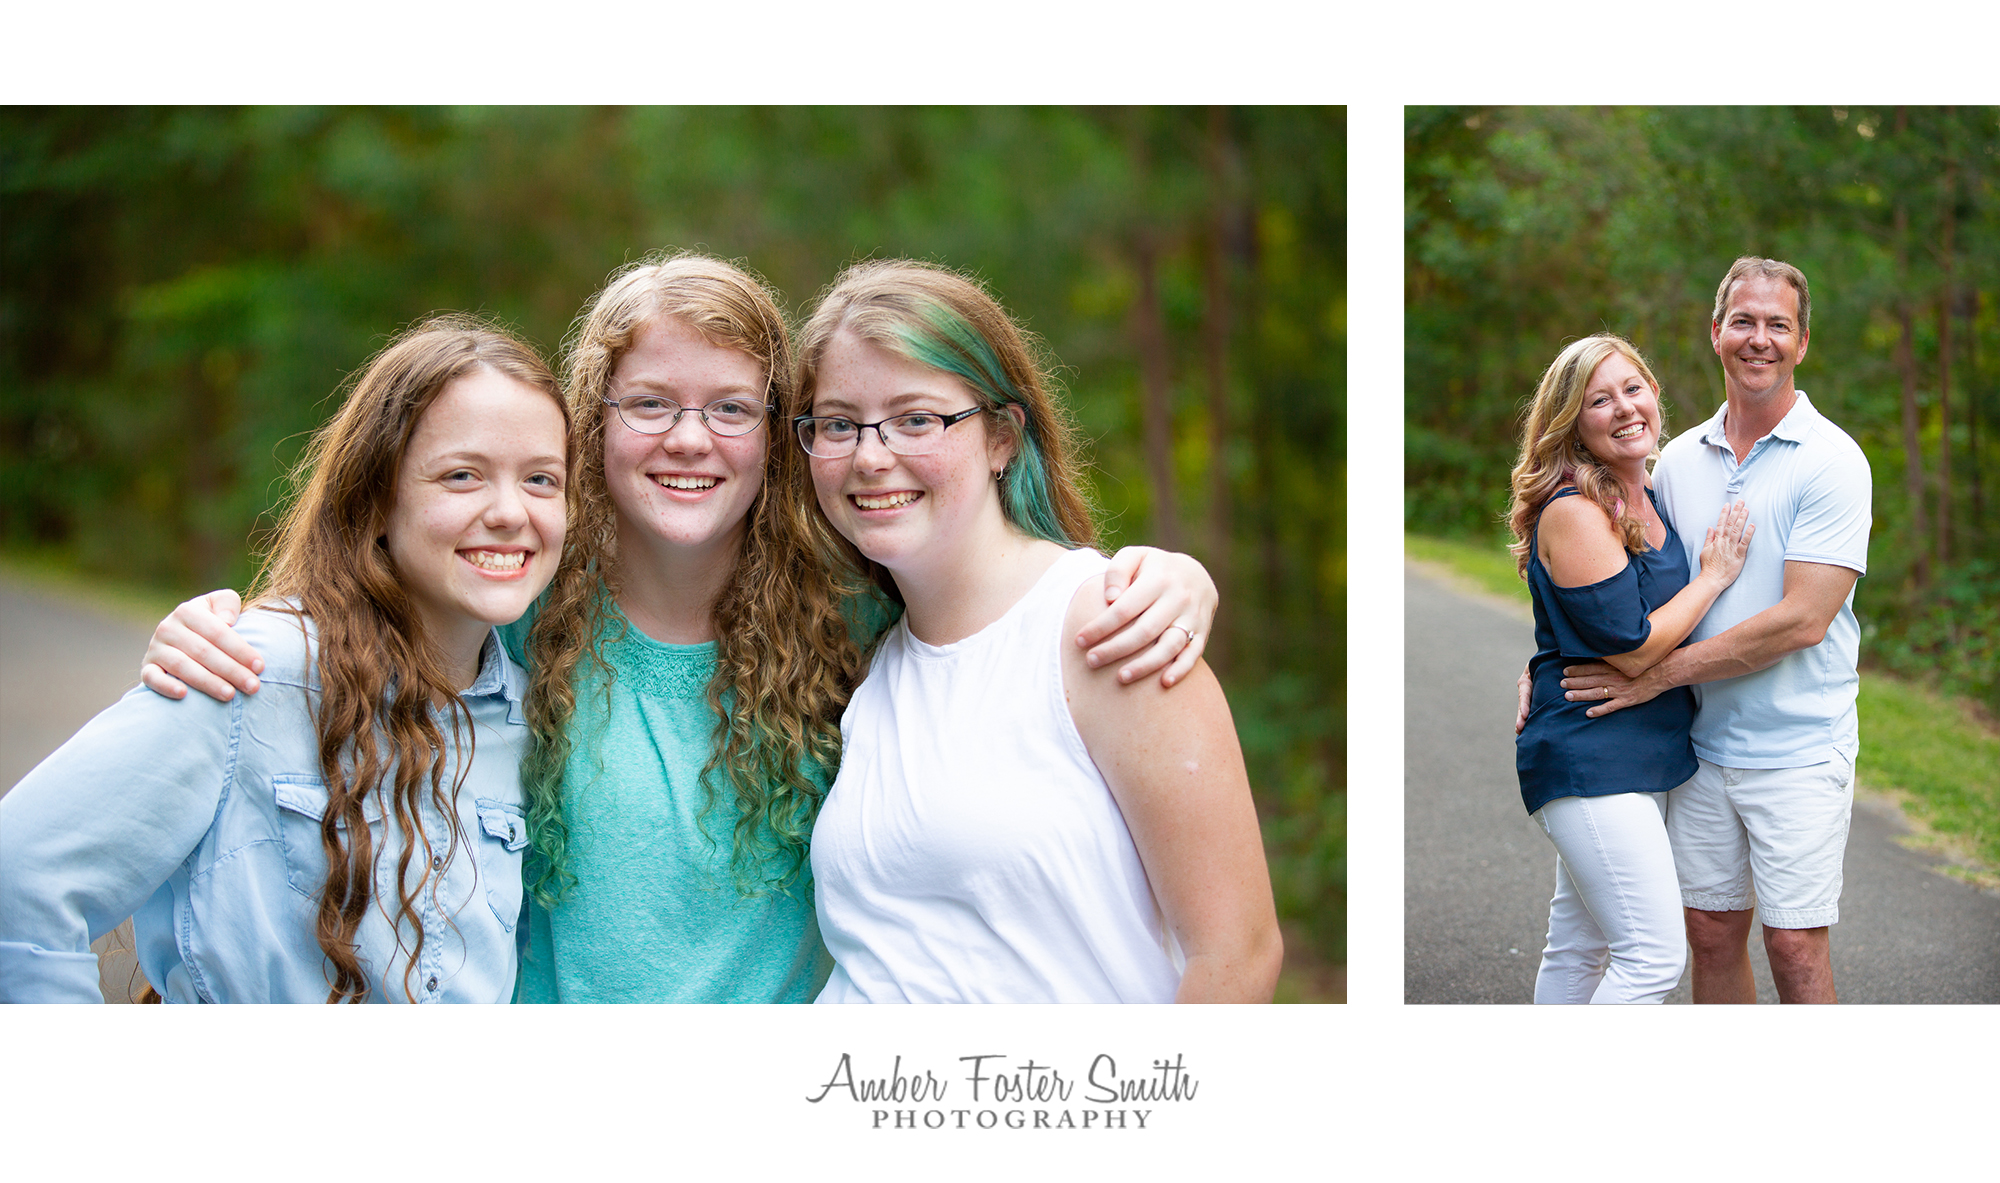 Amber Foster Smith Photography - Holly Springs Photograhper